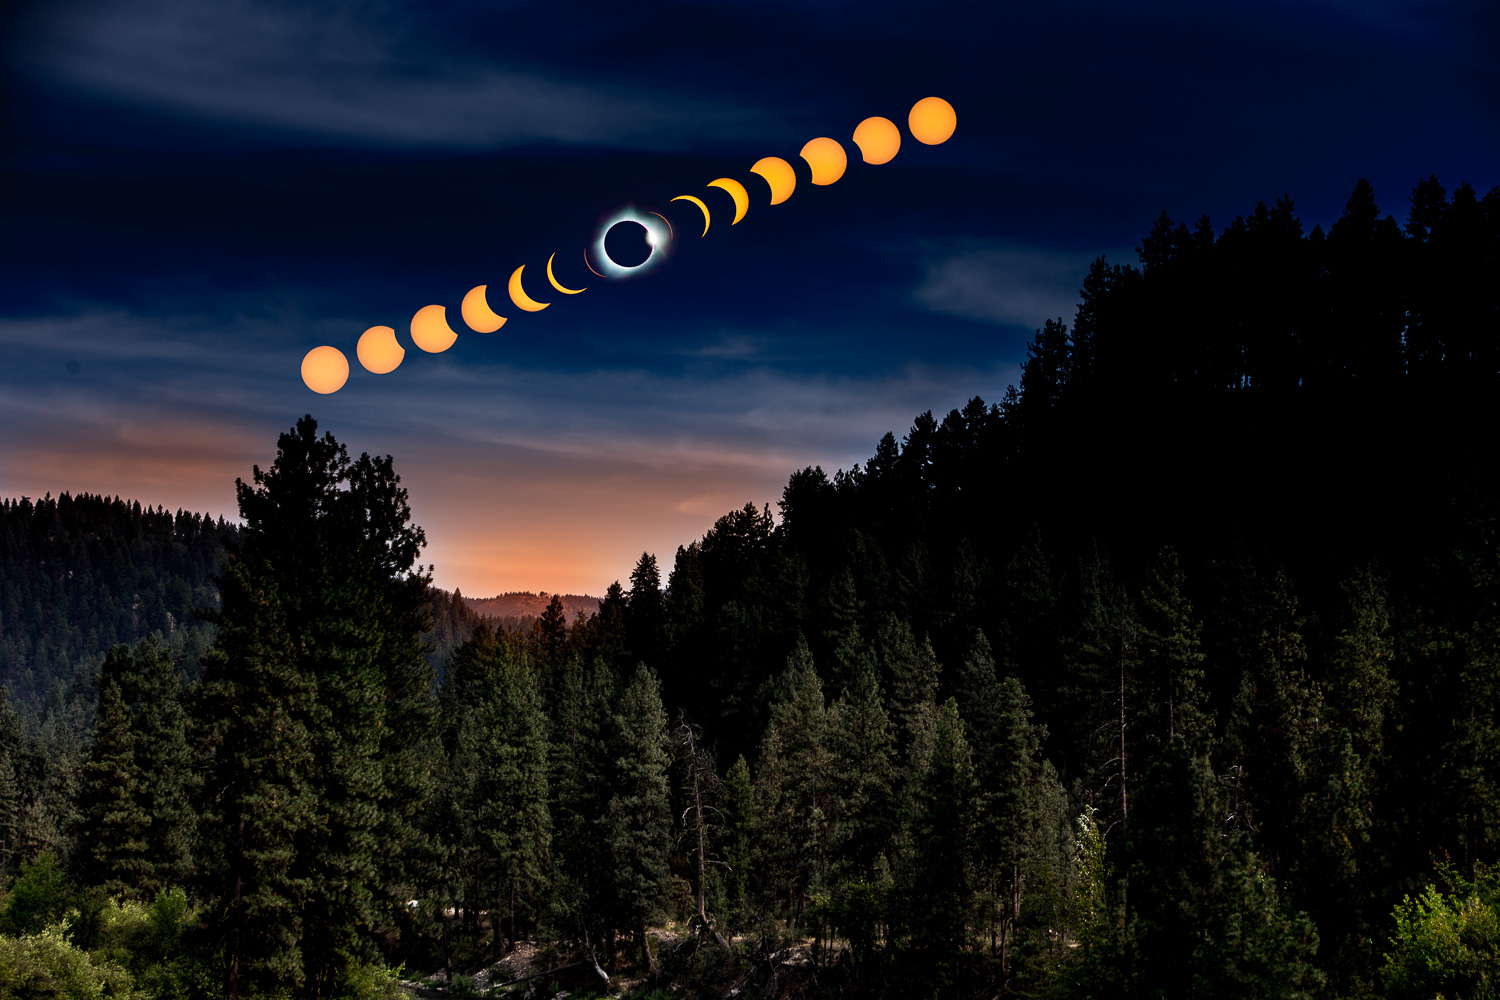 Image: Experiencing the 8/21/17 total eclipse was amazing. I used creative photo compositing to sequ...